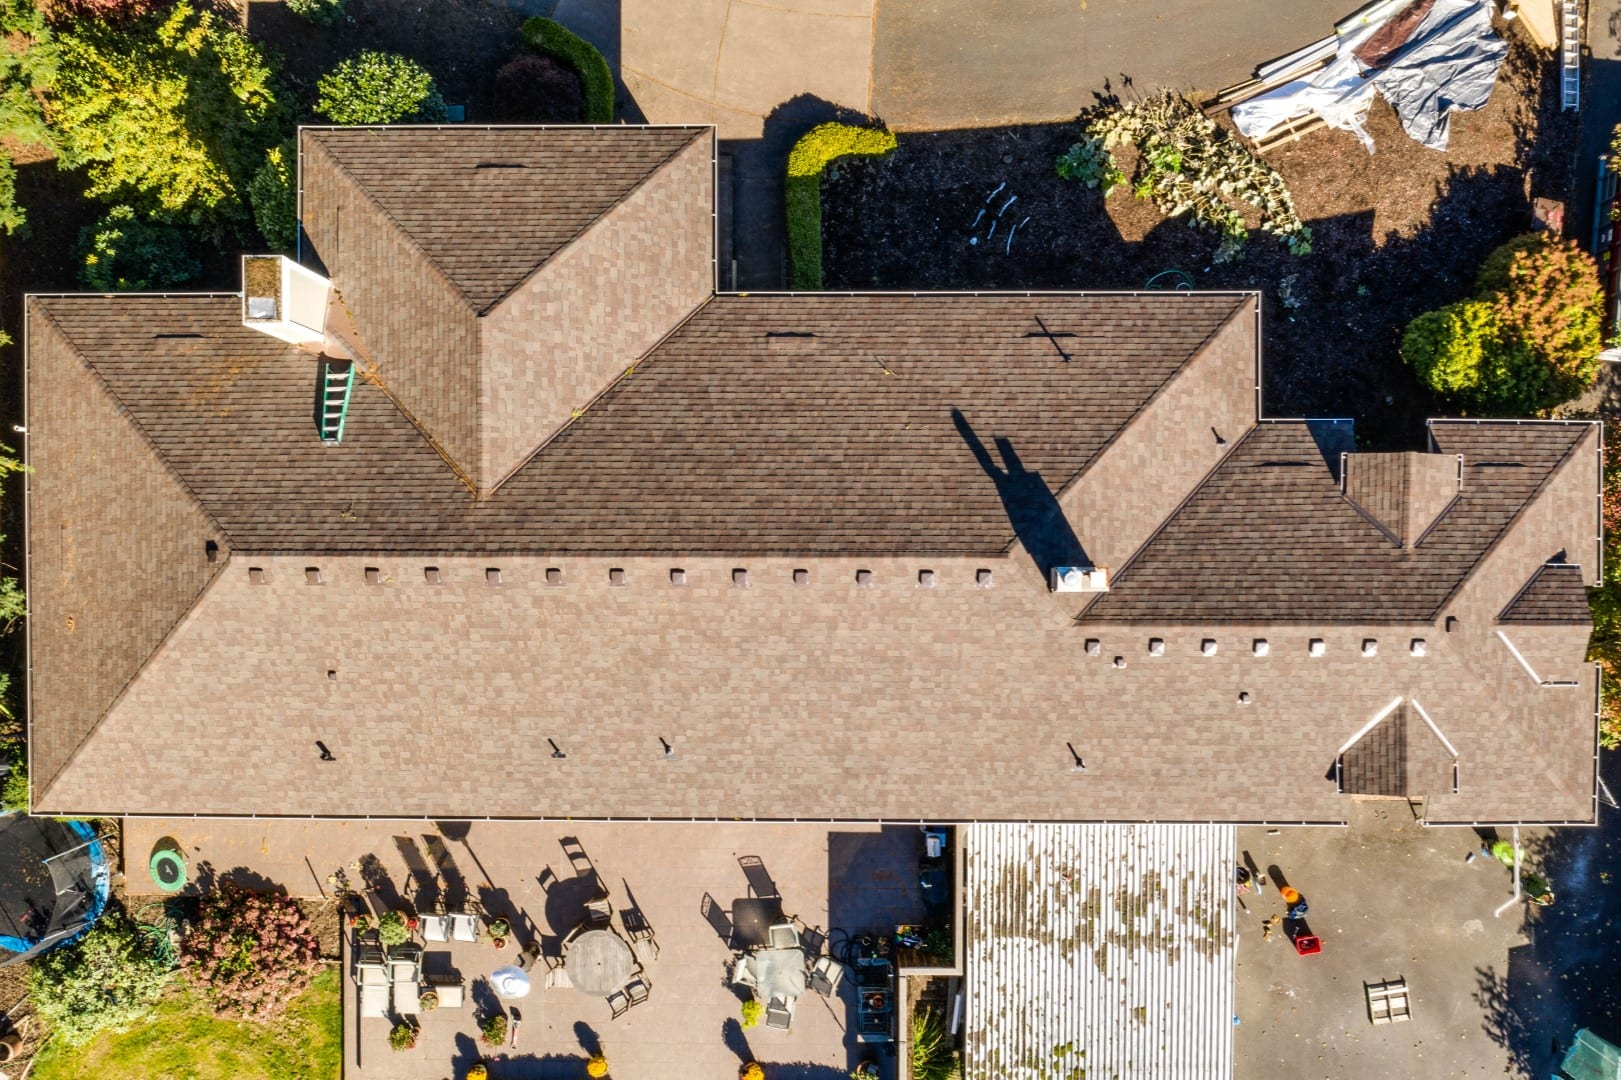 KVN Construction roofing project after picture from above in Portland